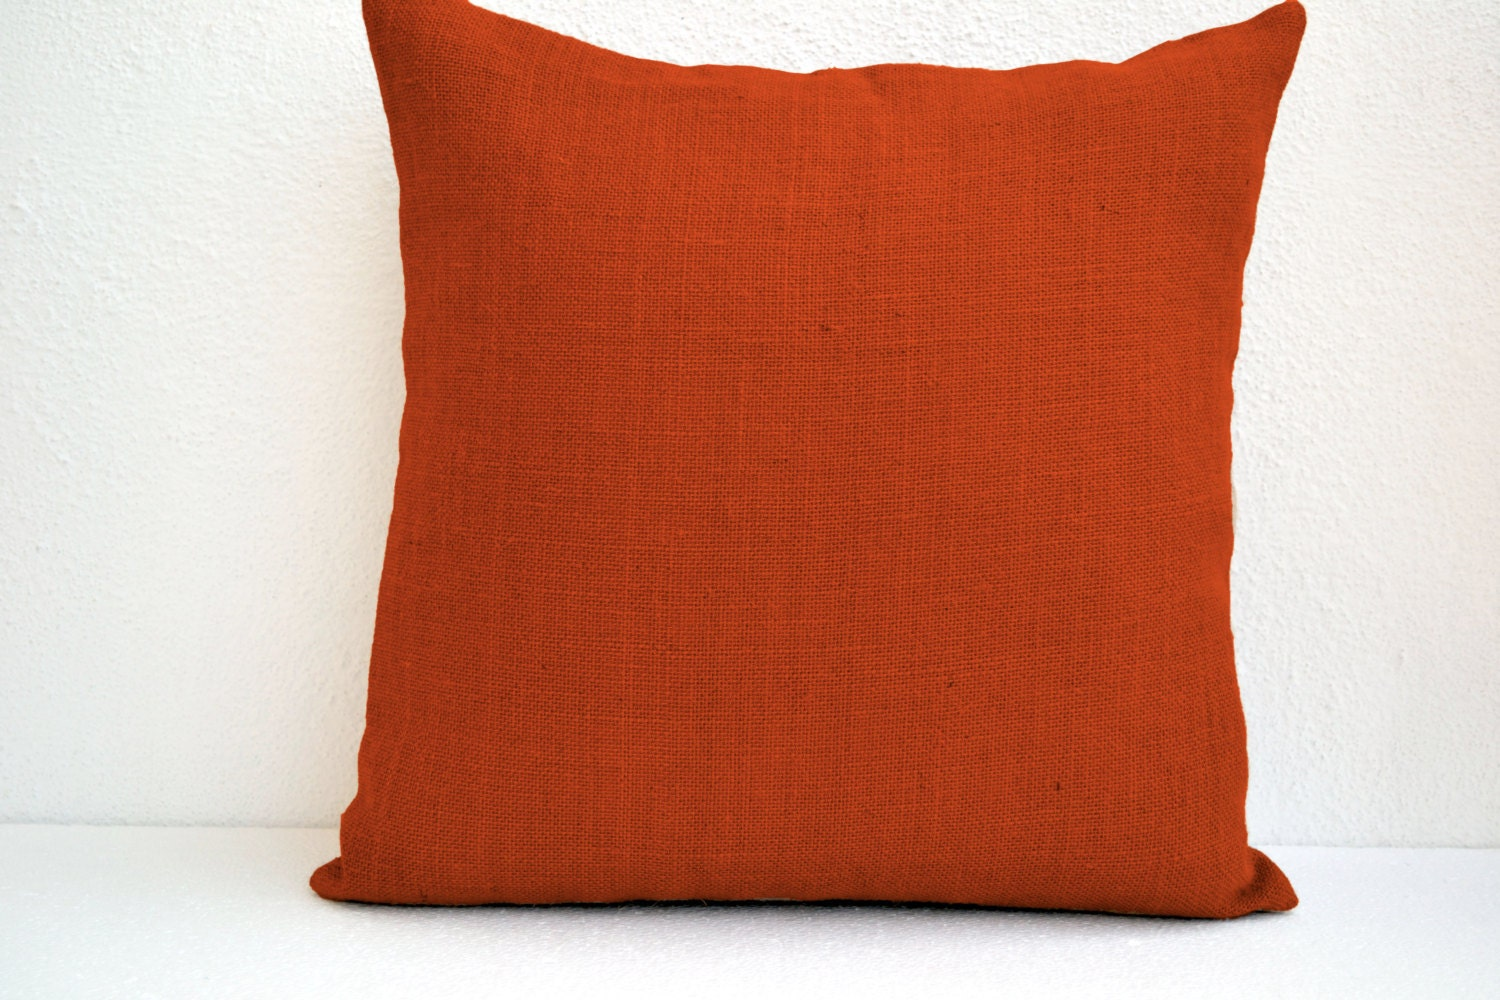 Orange Decorative Pillows Couch : Orange Burlap Throw Pillow Cover Decorative Pillowcase